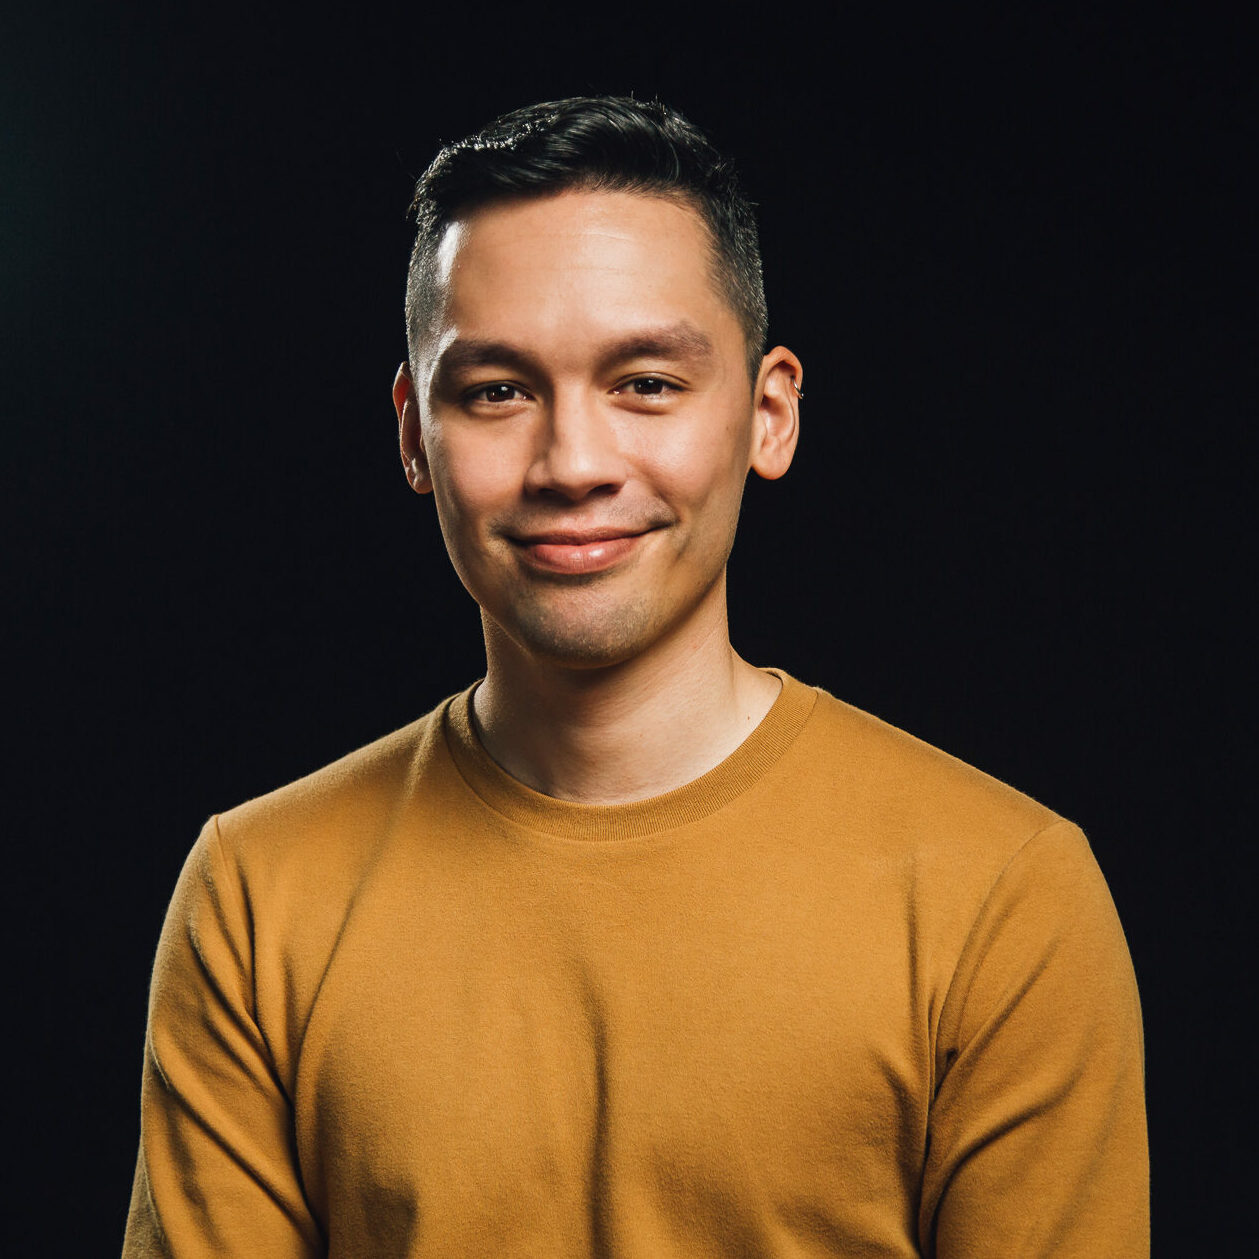 A portrait of Brandon Yan who is of mixed Asian and White ancestry. He is wearing a yellow sweater and has short, dark hair.